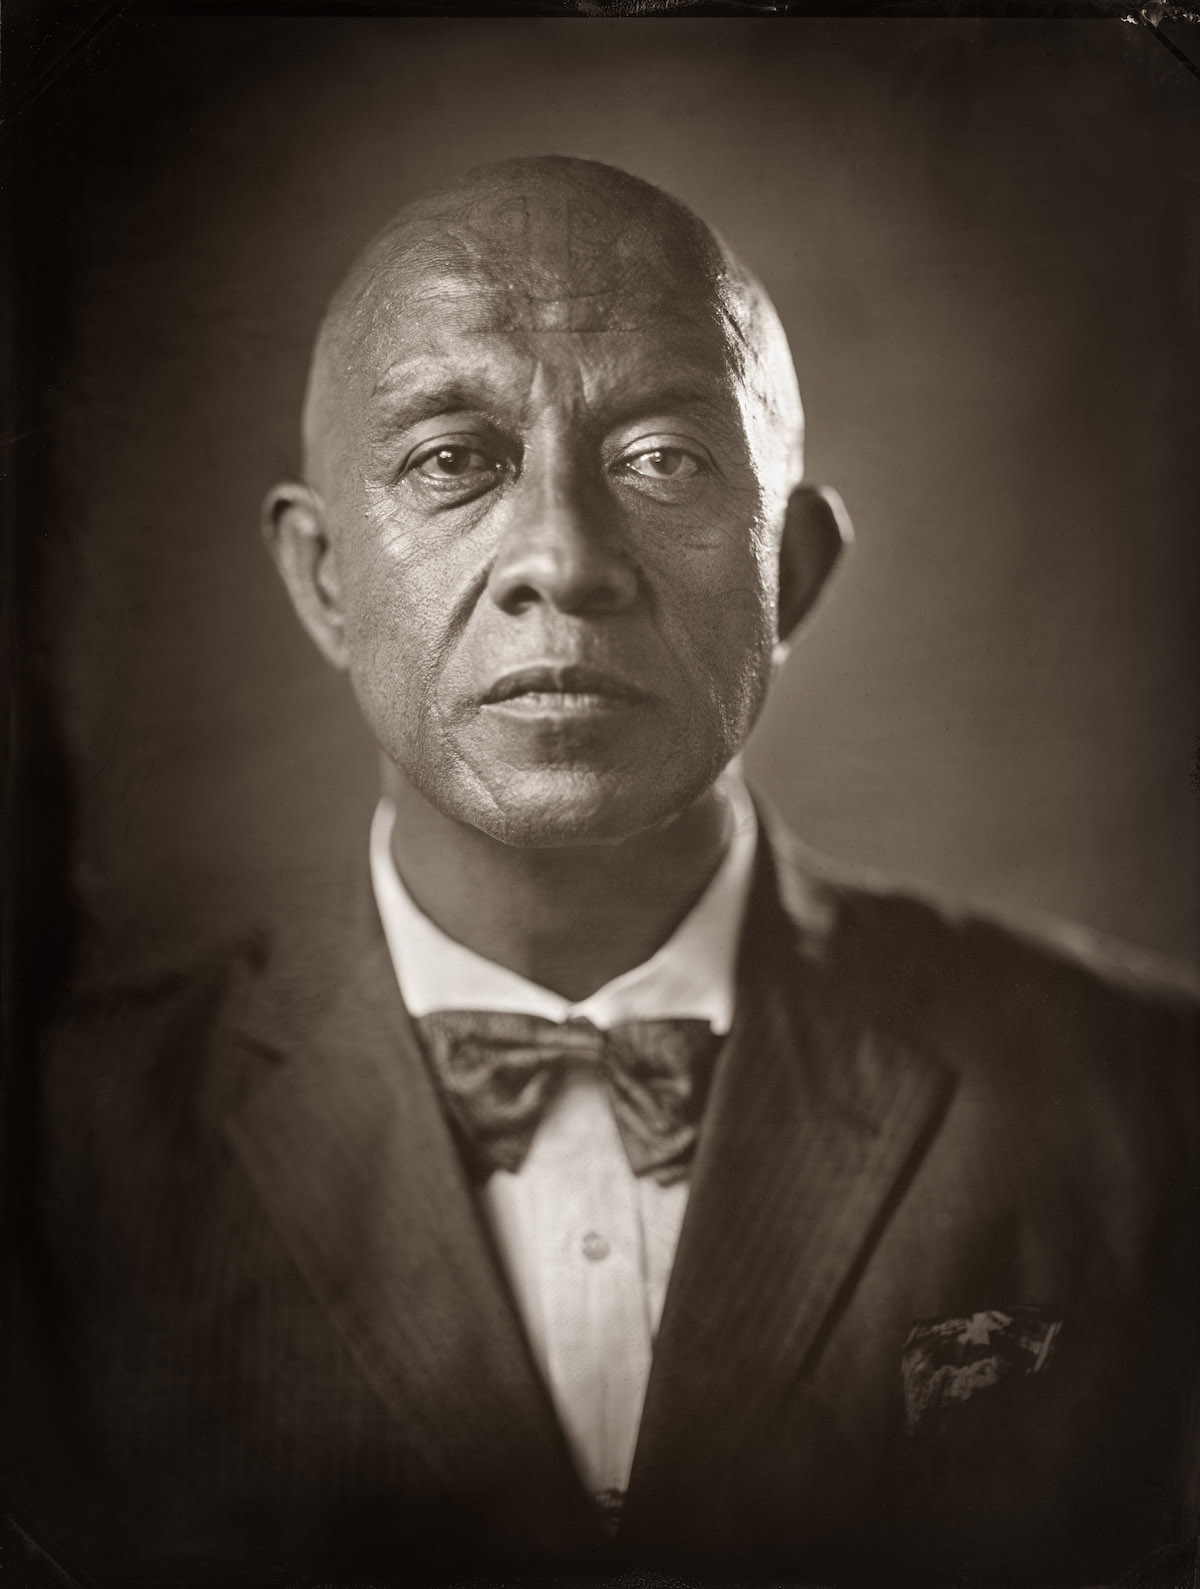 Wet plate portrait photography by Michael Bradley